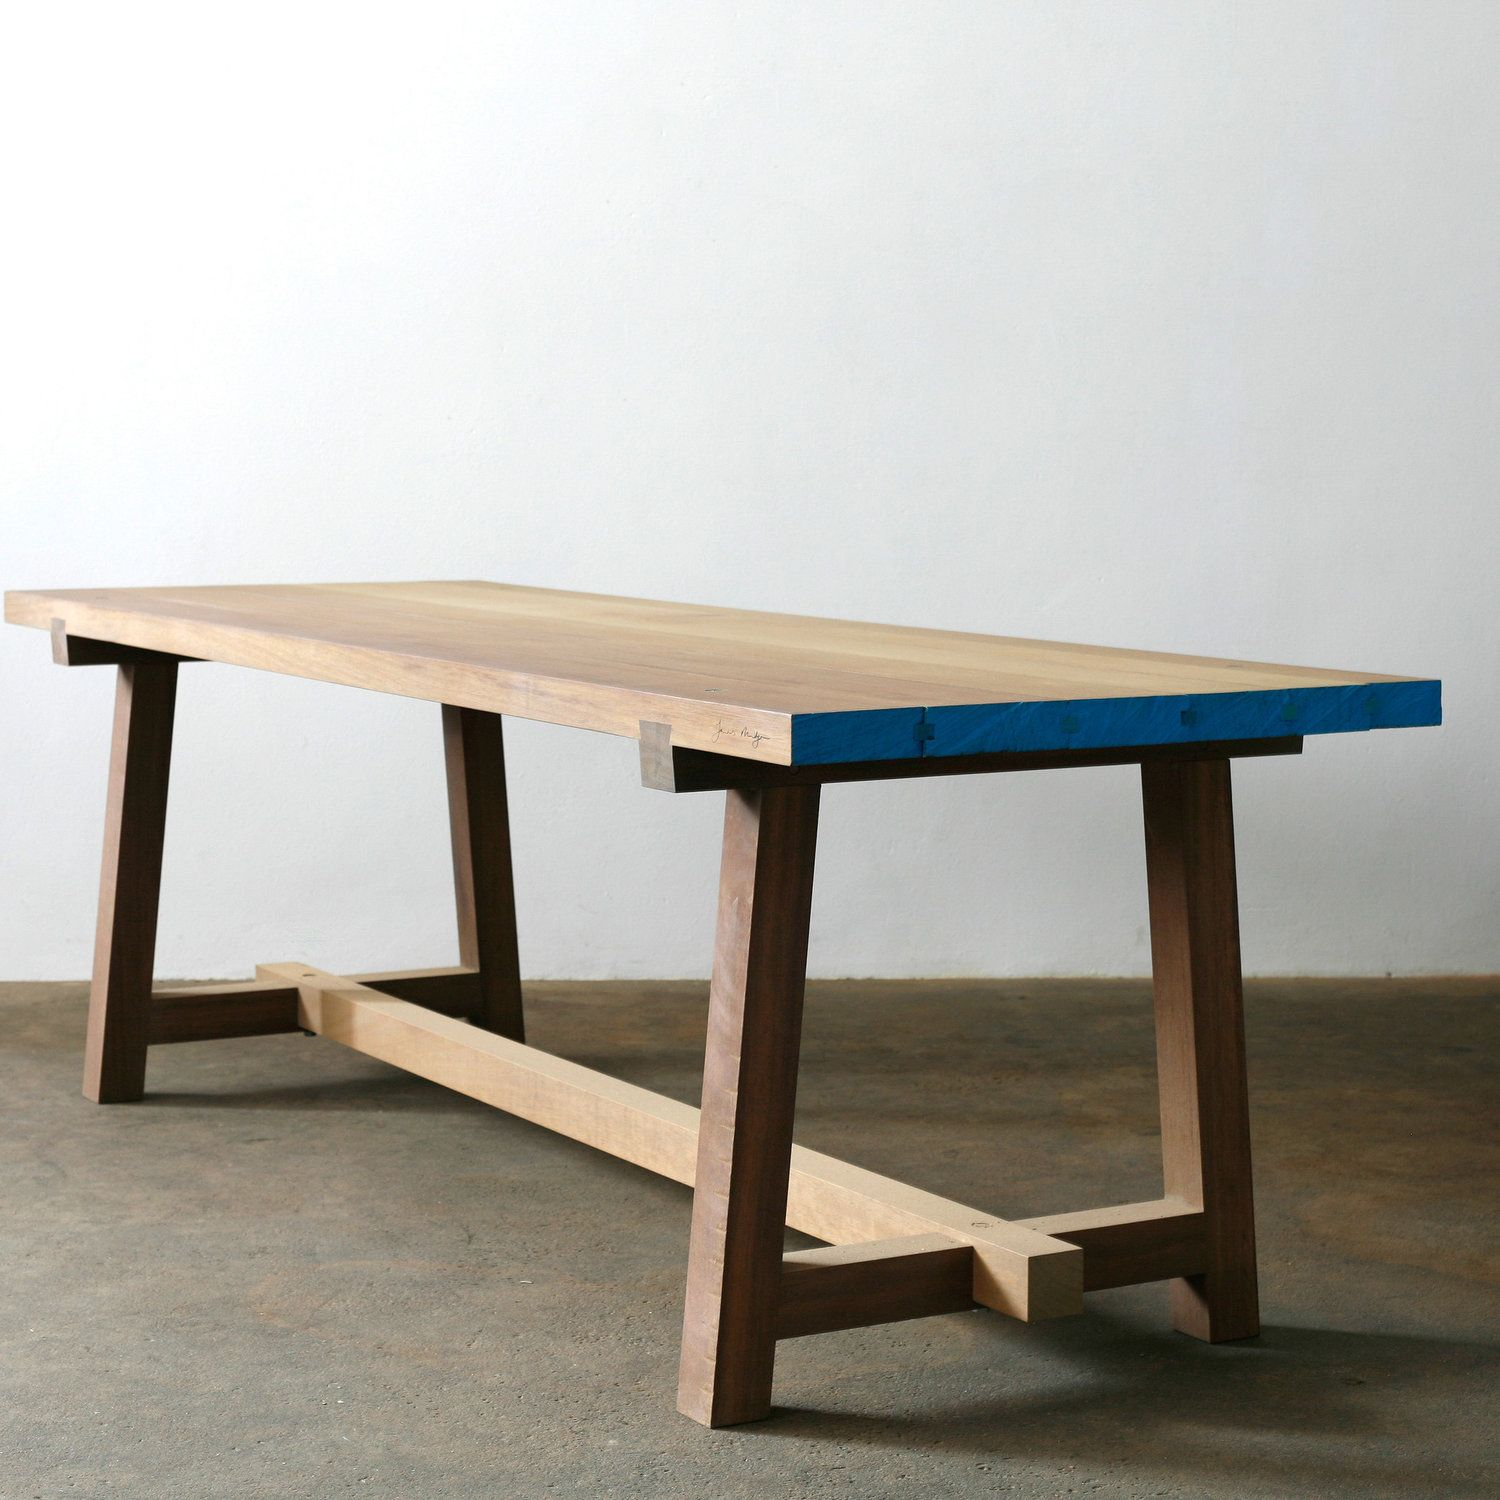 Pin By Kt S On Wood Shop Pinterest Table Furniture Design And